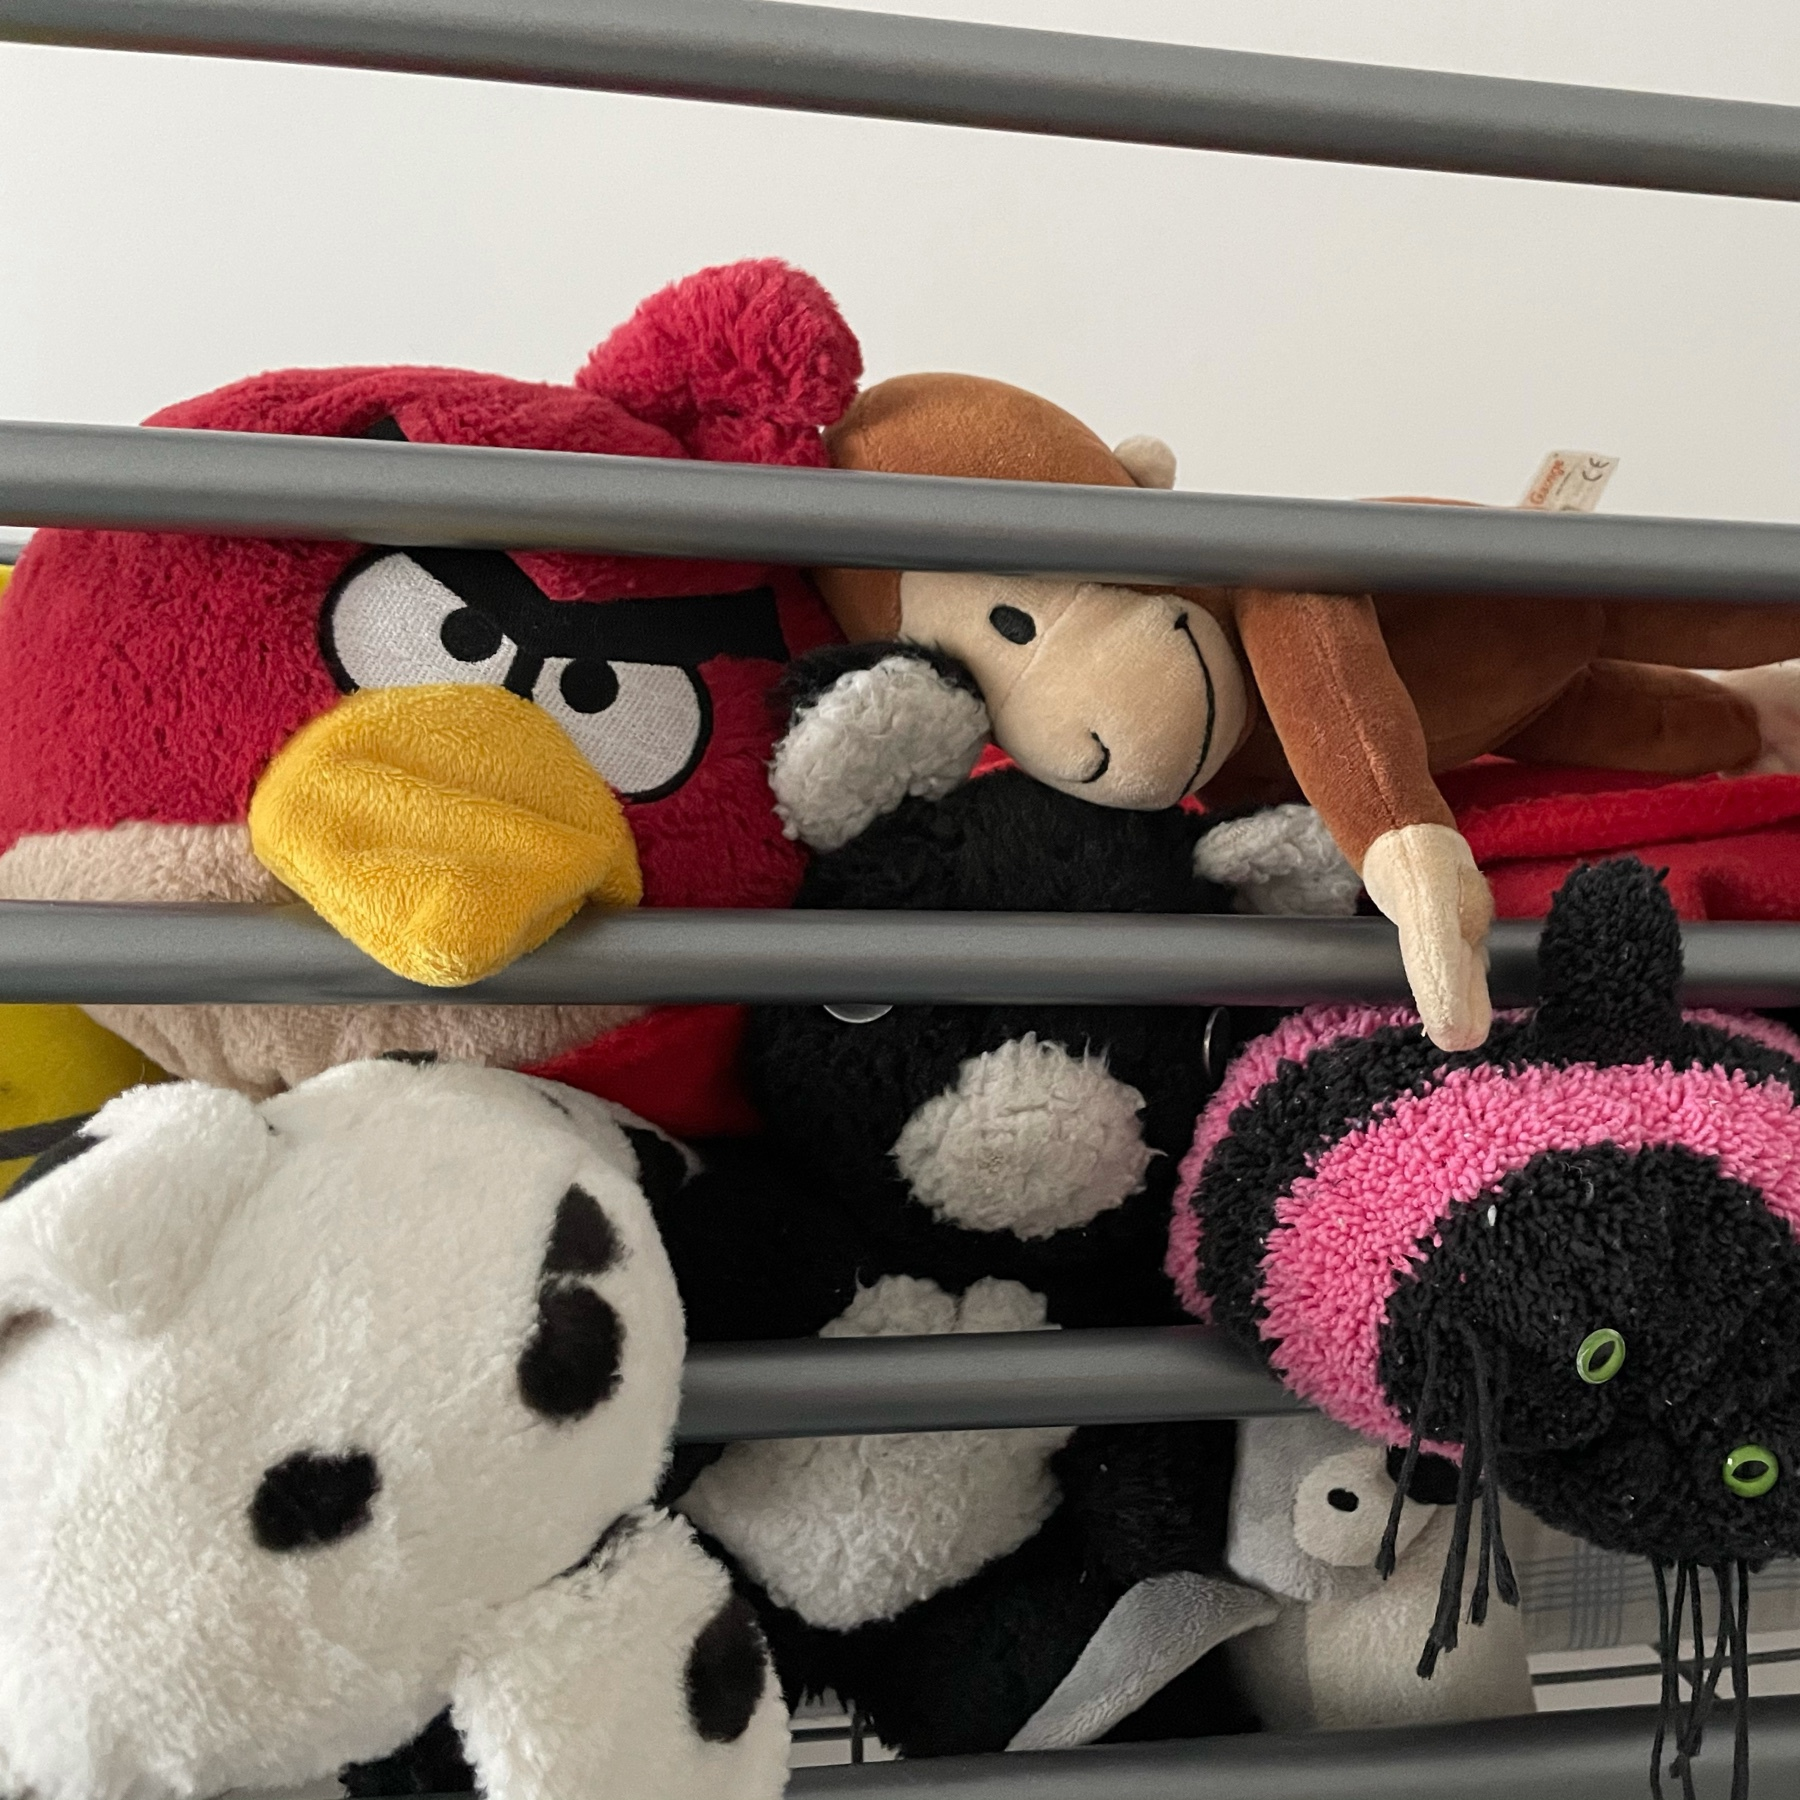 several teddy bears, dogs, monkey on a top bunk of a bunk bed